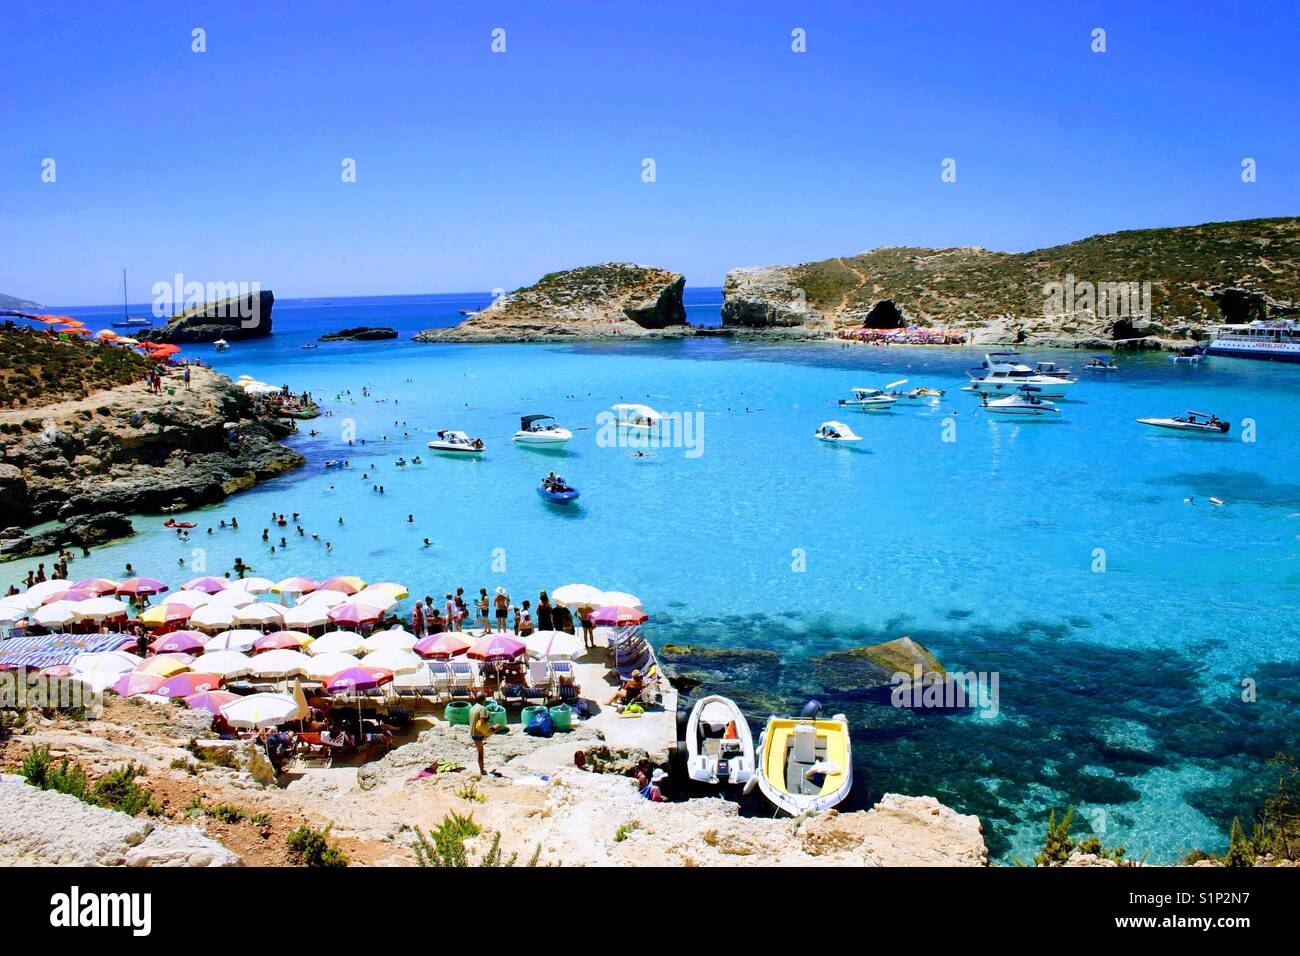 Blue lagoon on the island of Camino in Malta on a Chrystal clear day - Stock Image